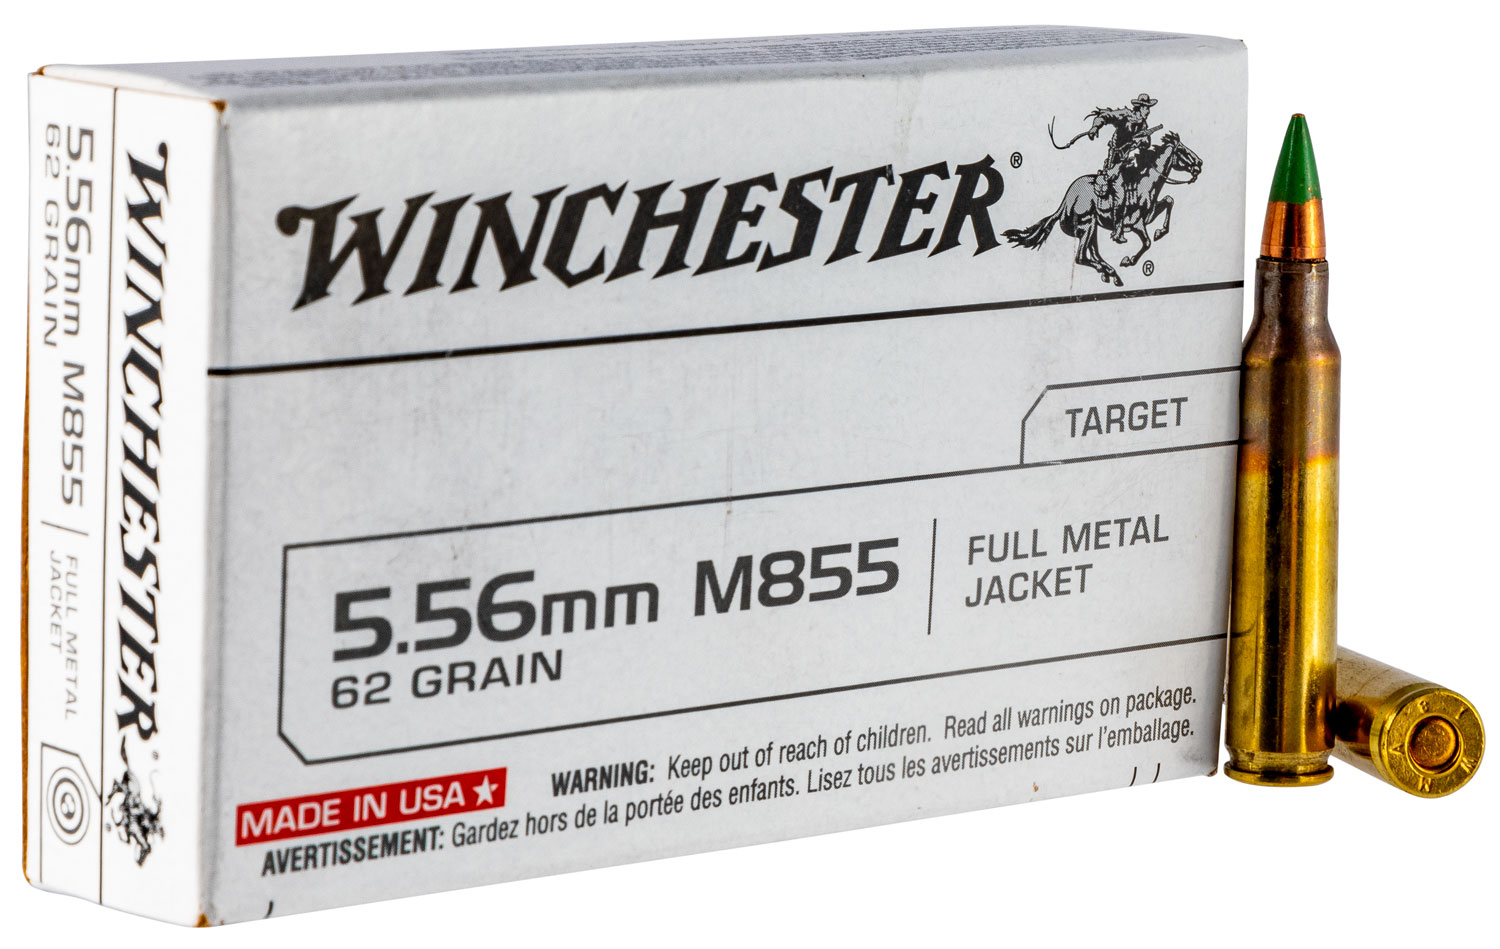 Winchester Q3269 Best Value USA 5.56 NATO FMJ Green Tip 62GR FMJ 20 Box/50 Case